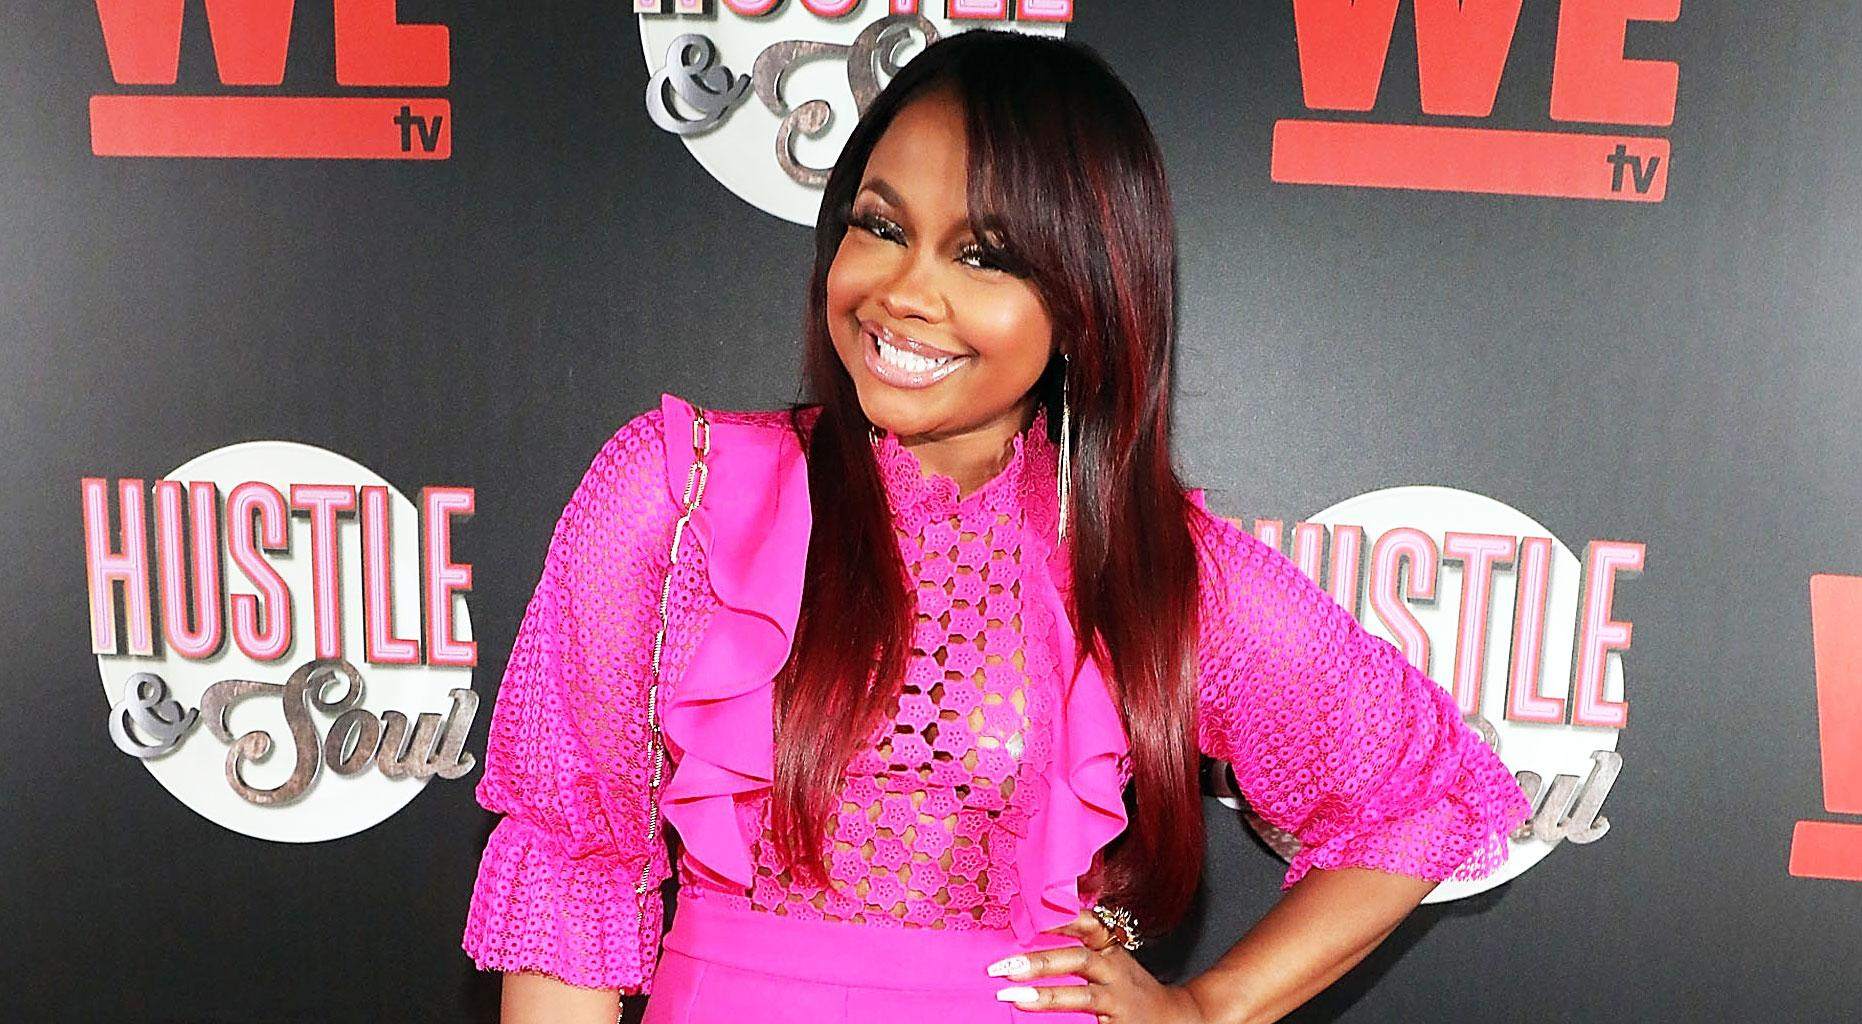 Phaedra Parks' Fans Want Her Back On RHOA To Replace NeNe Leakes